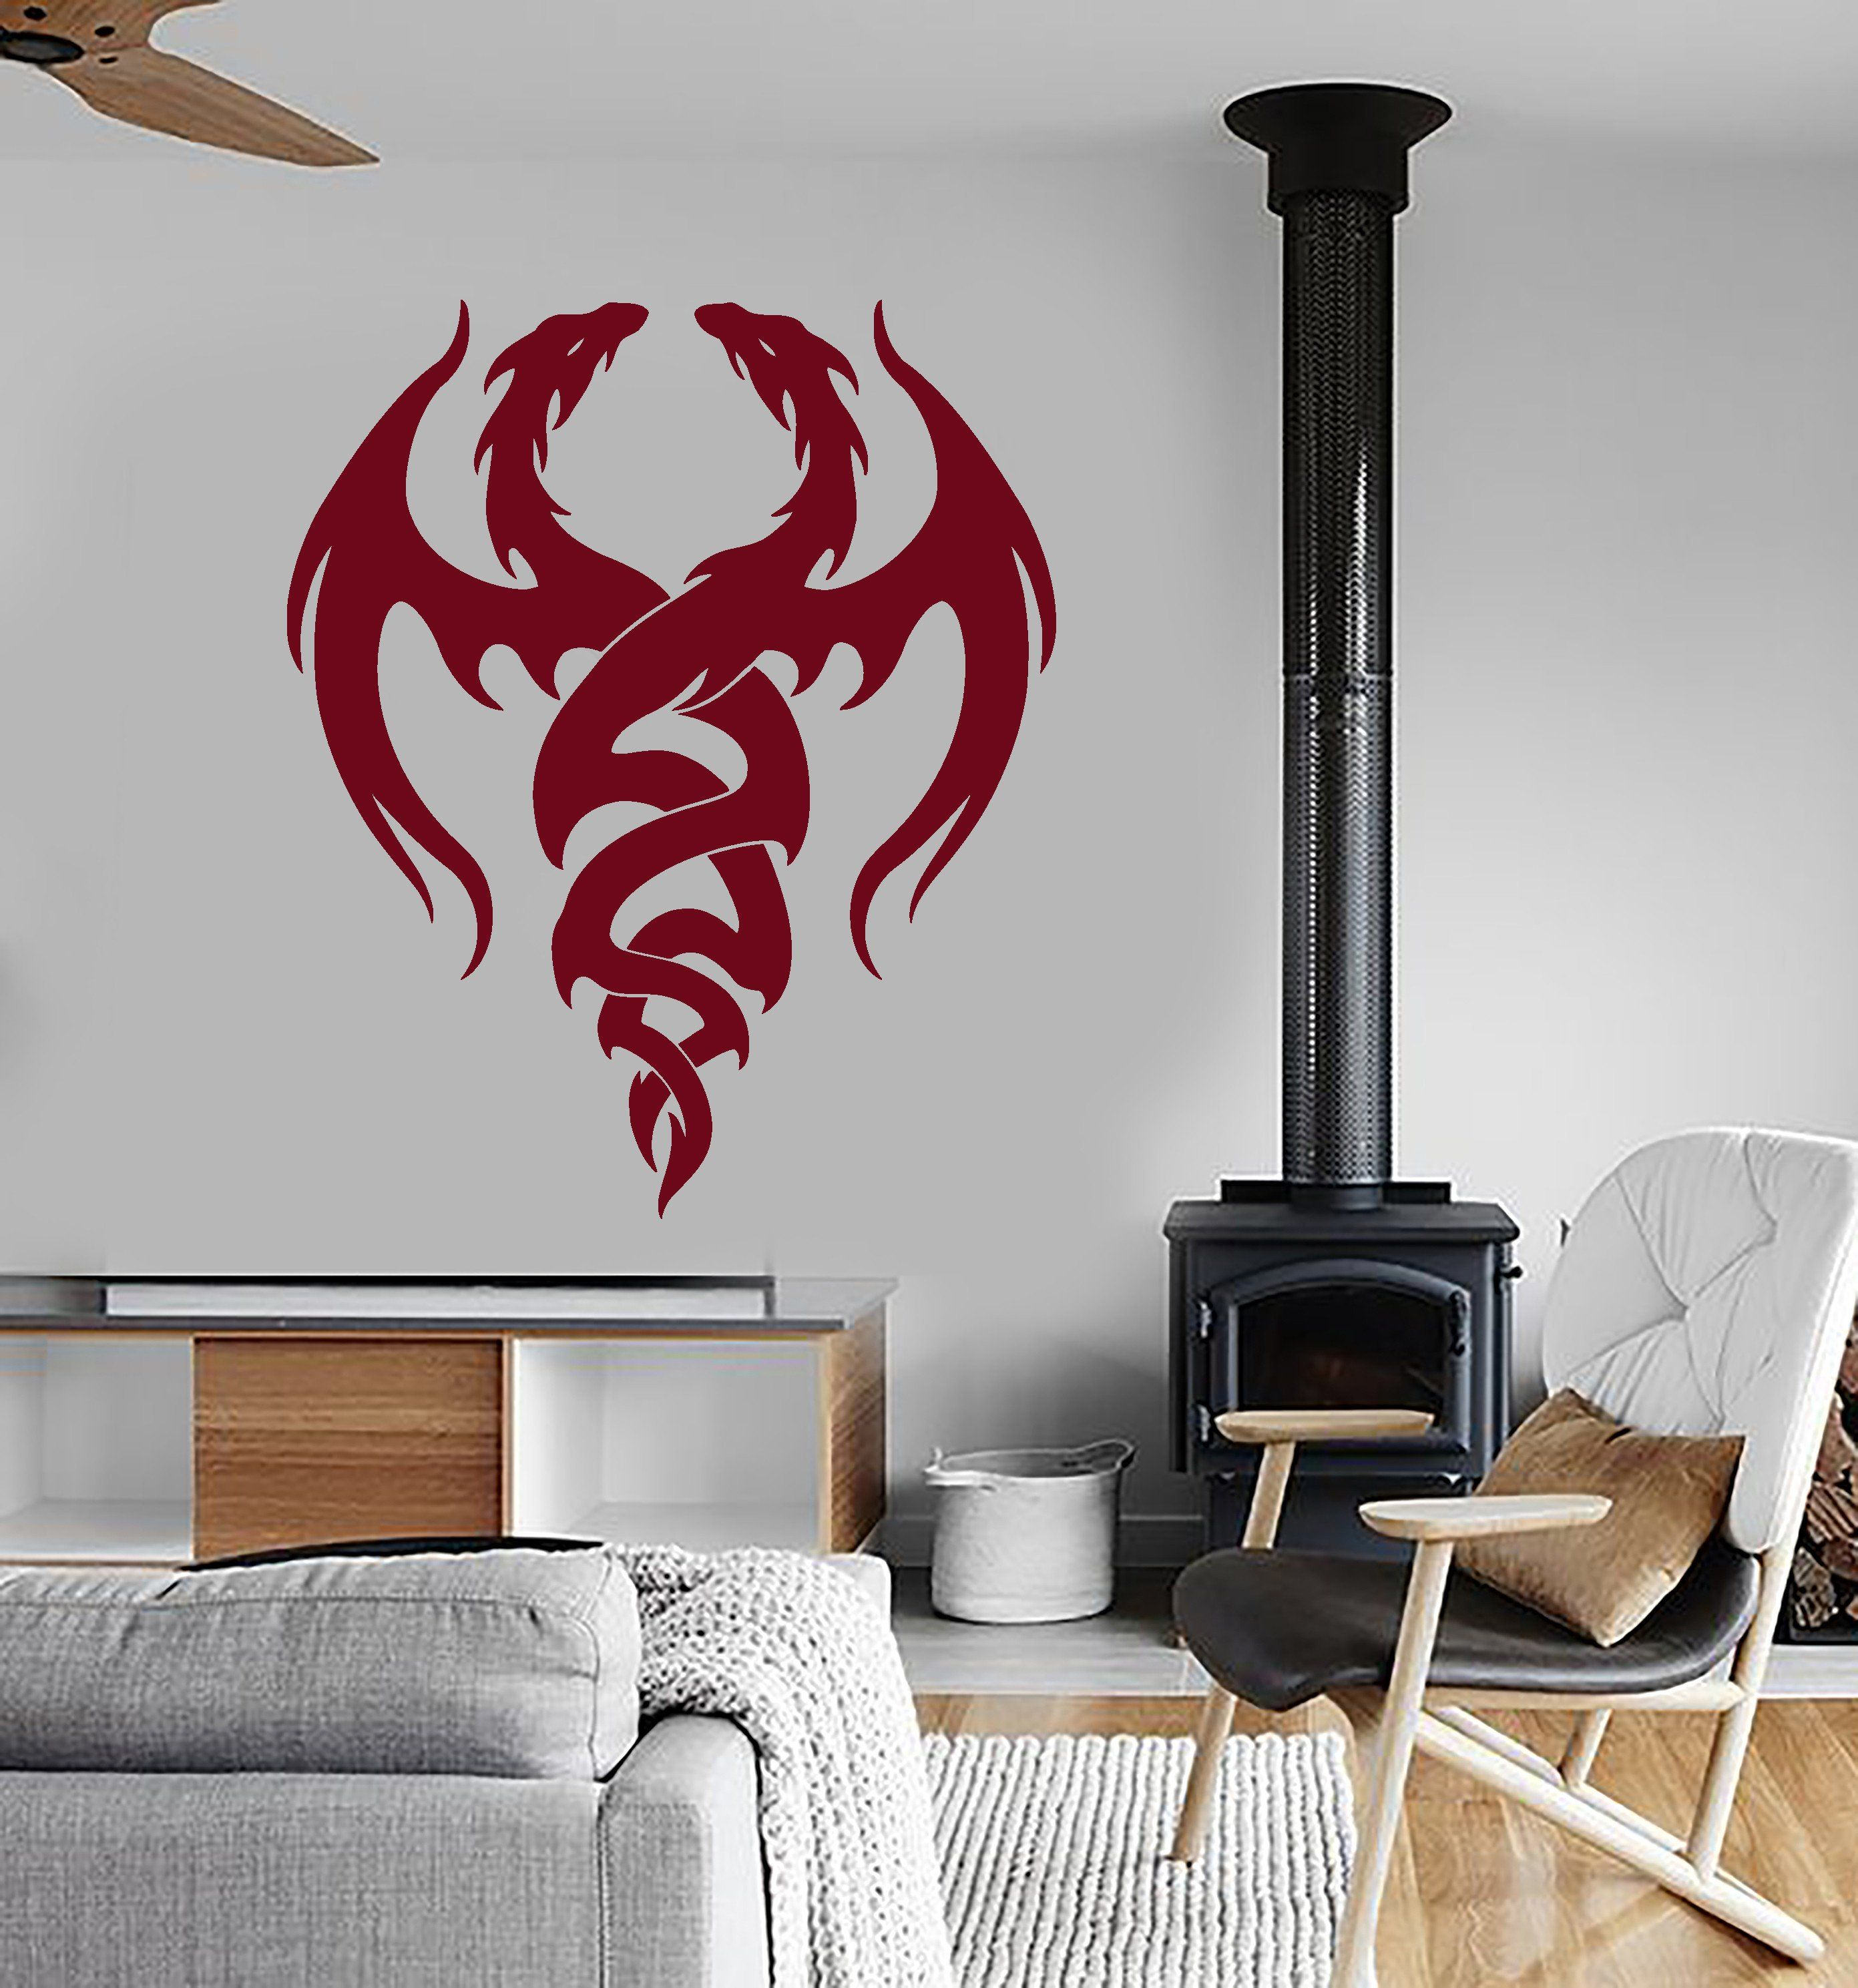 Vinyl Wall Decal Dragons Magic Fantasy Childs Kids Room Stickers